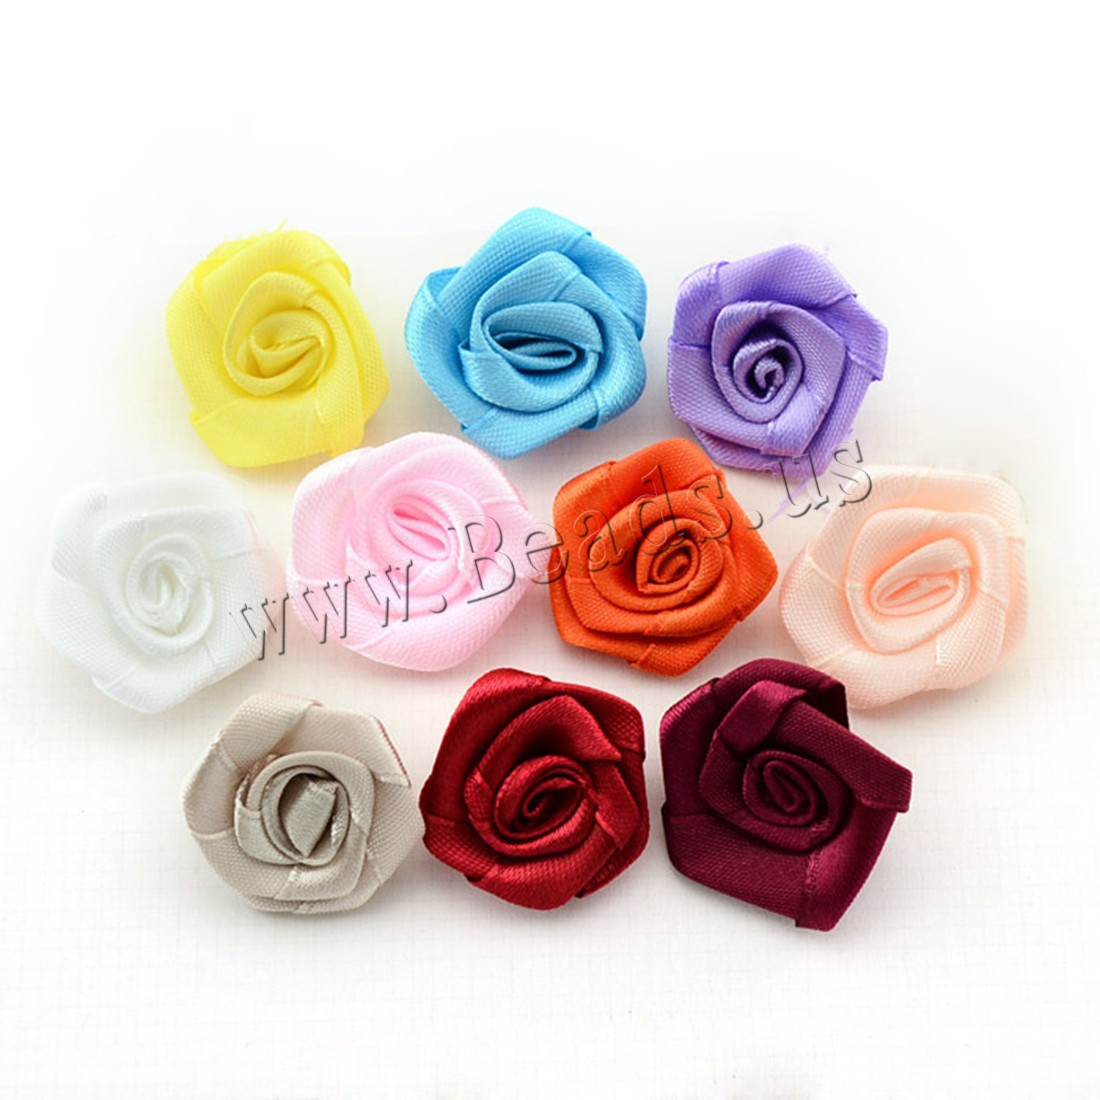 Buy Fashion Decoration Flowers Satin Ribbon children mixed colors 30mm 200PCs/Bag Sold Bag